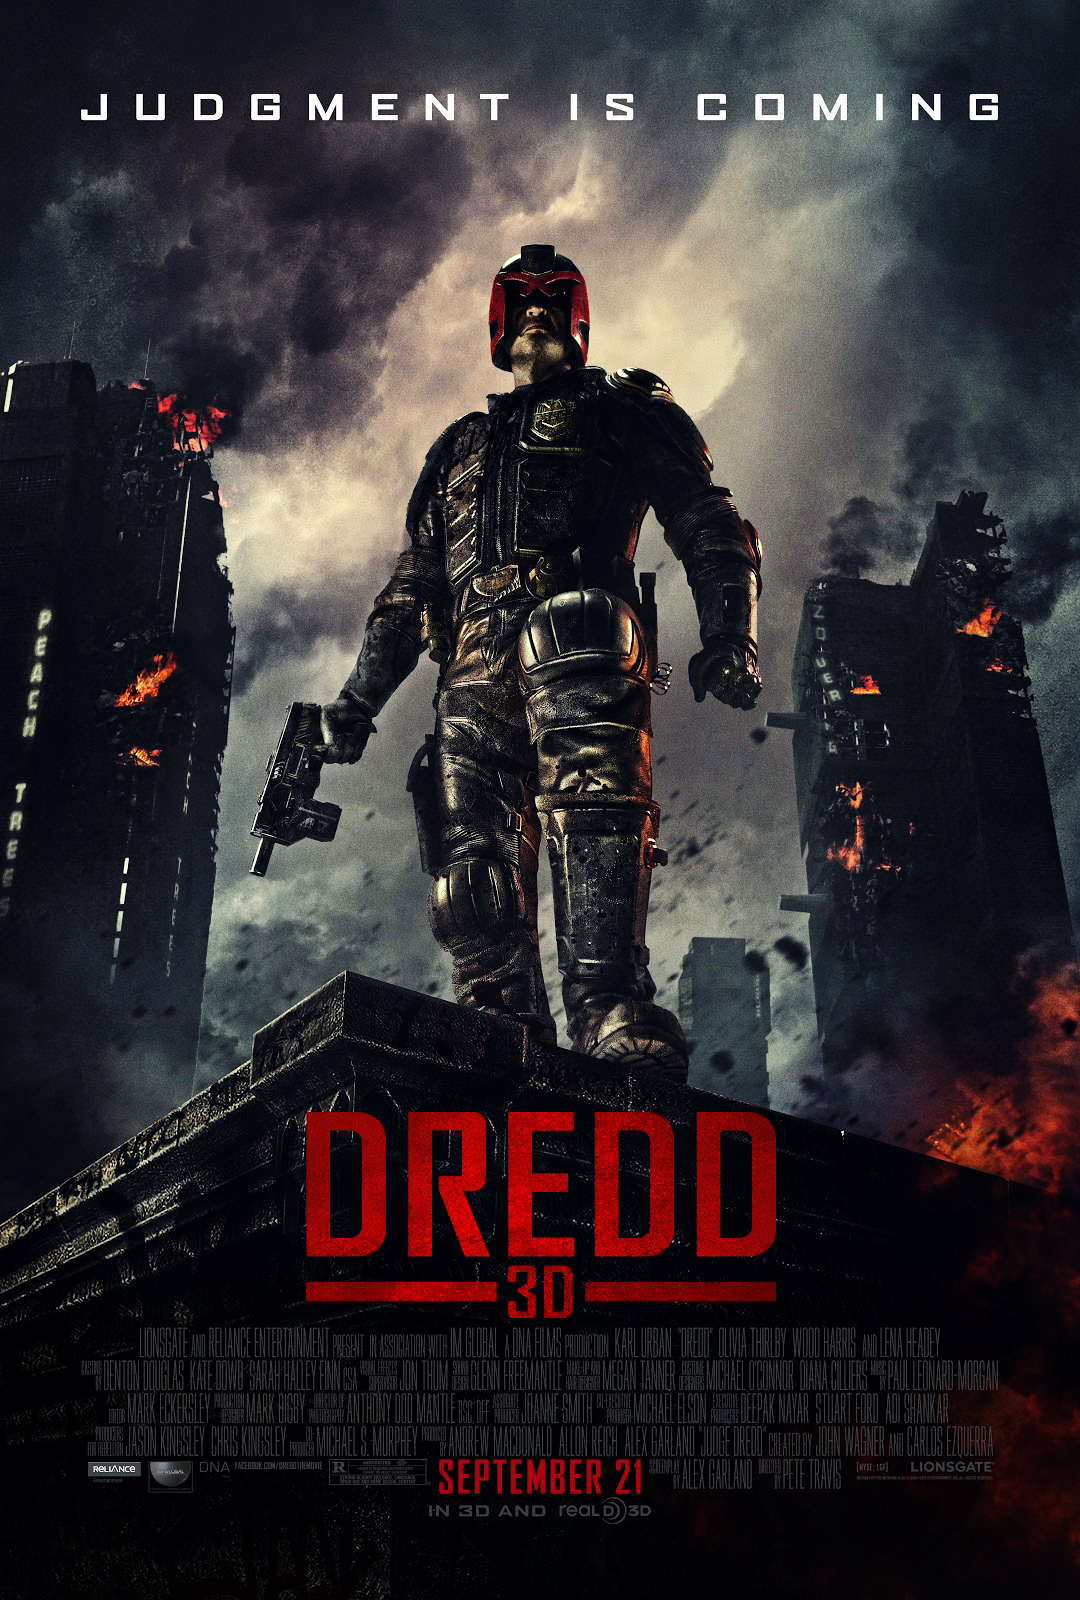 Dredd 3D Movie Poster HD WallpapersImage to Wallpaper 1080x1600